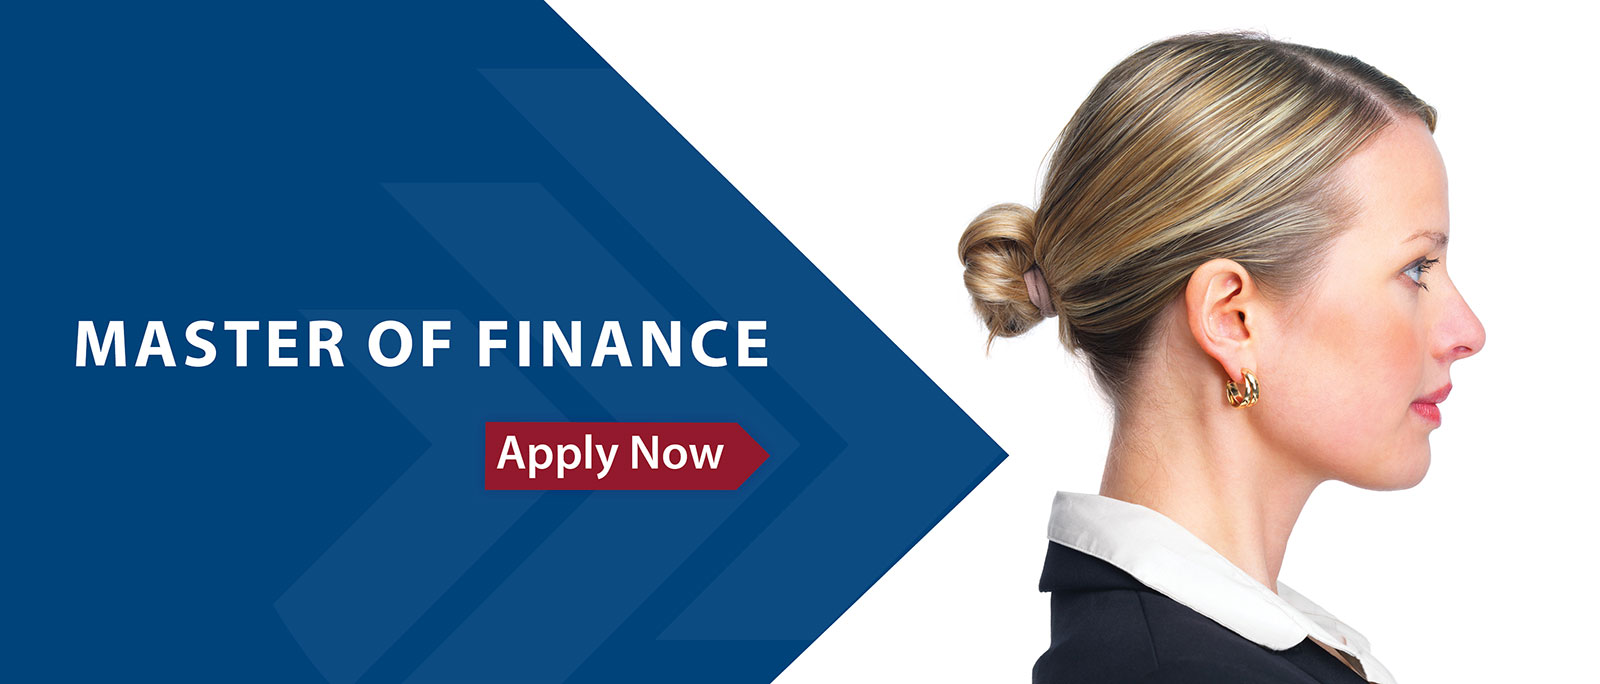 Master of Finance - Apply Now.